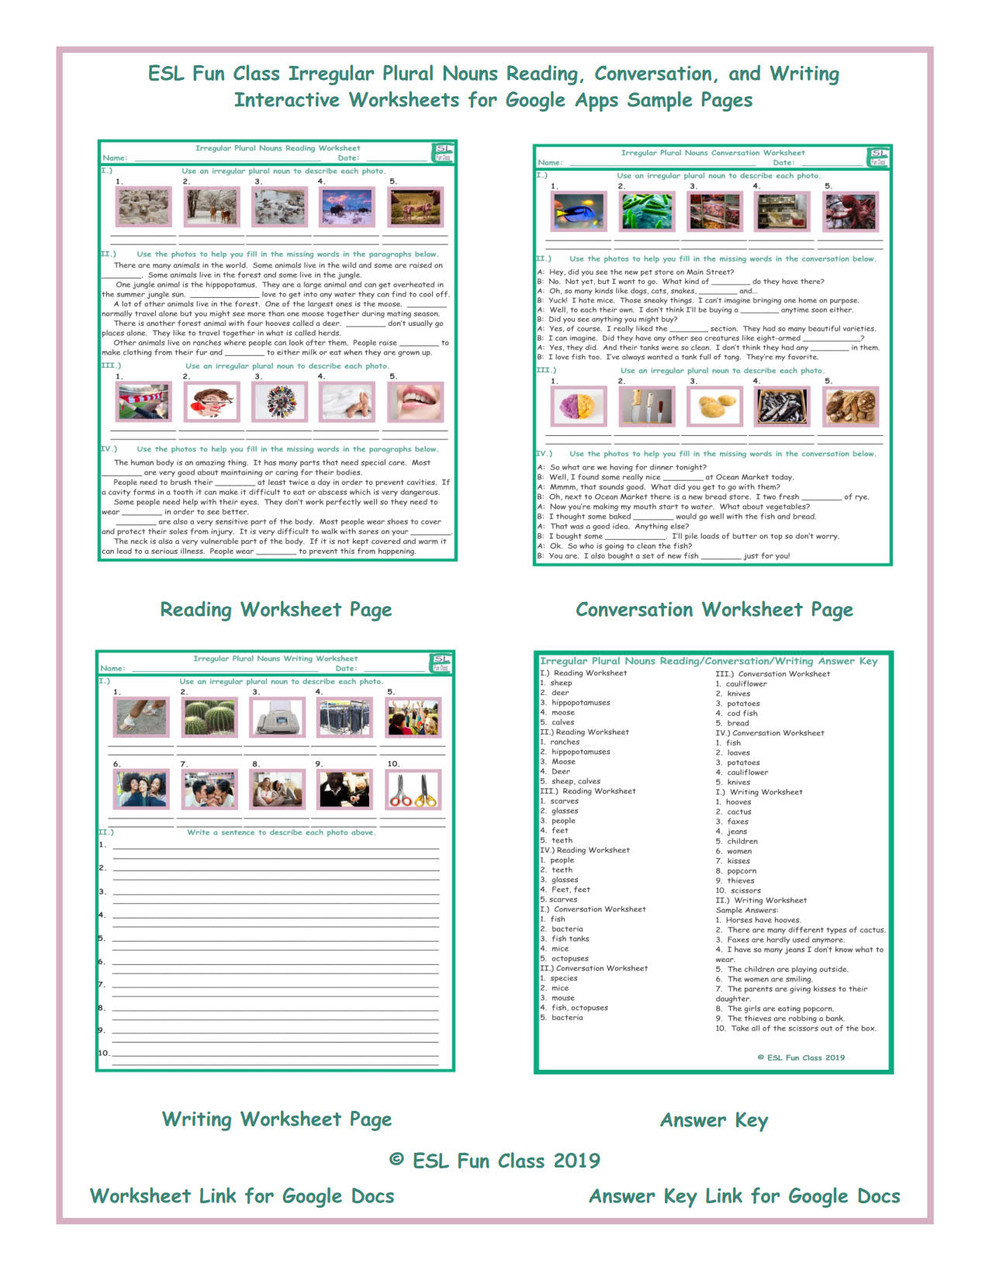 Irregular Plural Nouns Read-Converse-Write Interactive Worksheets for  Google Apps LINKS - Amped Up Learning [ 1280 x 989 Pixel ]